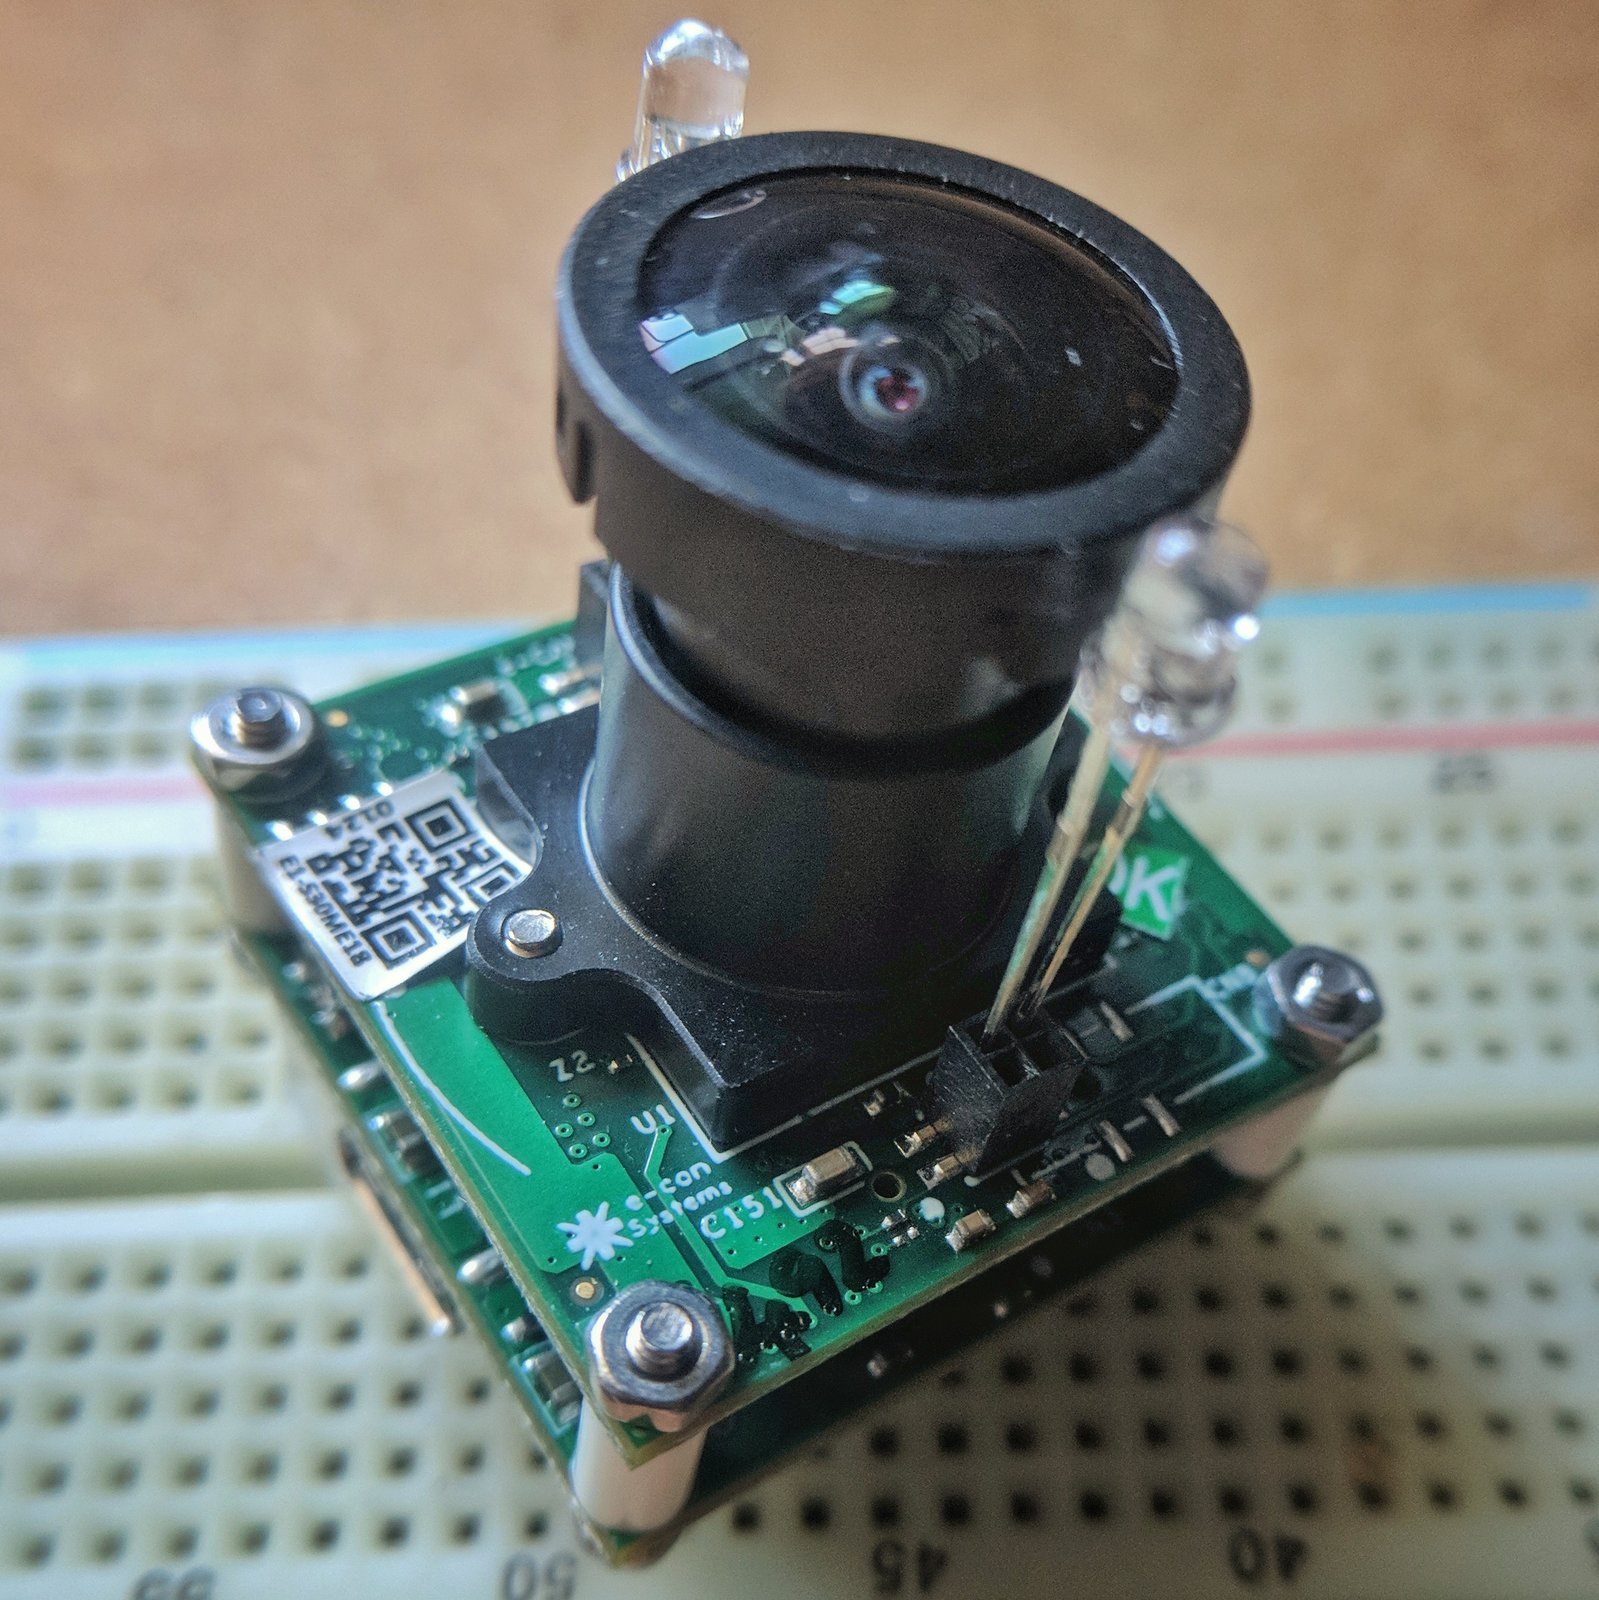 Add an eye to the Octopi: Camera See3CAM_CU30 - review - Not Enough TECH